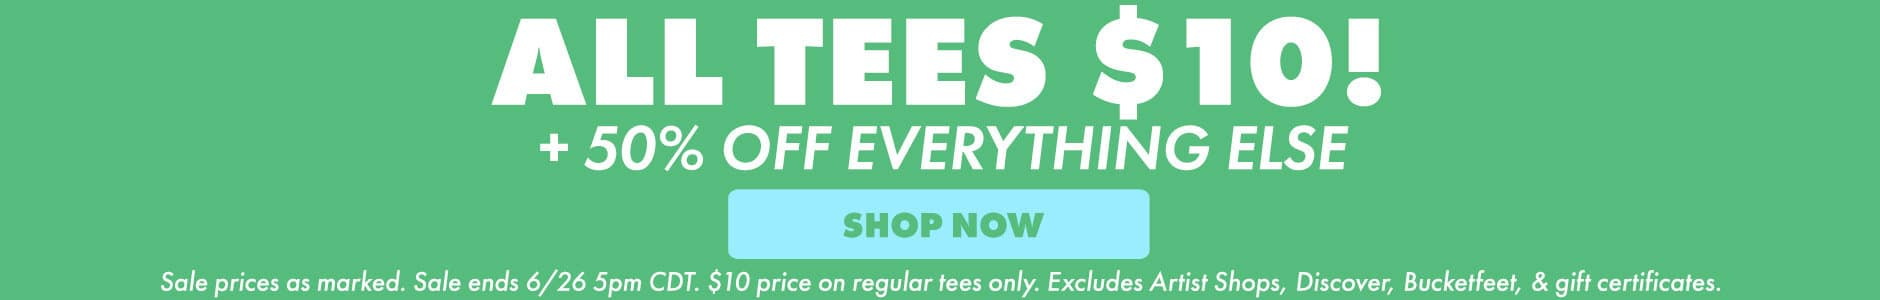 $10 TEES! AND 50% OFF EVERYTHING ELSE!